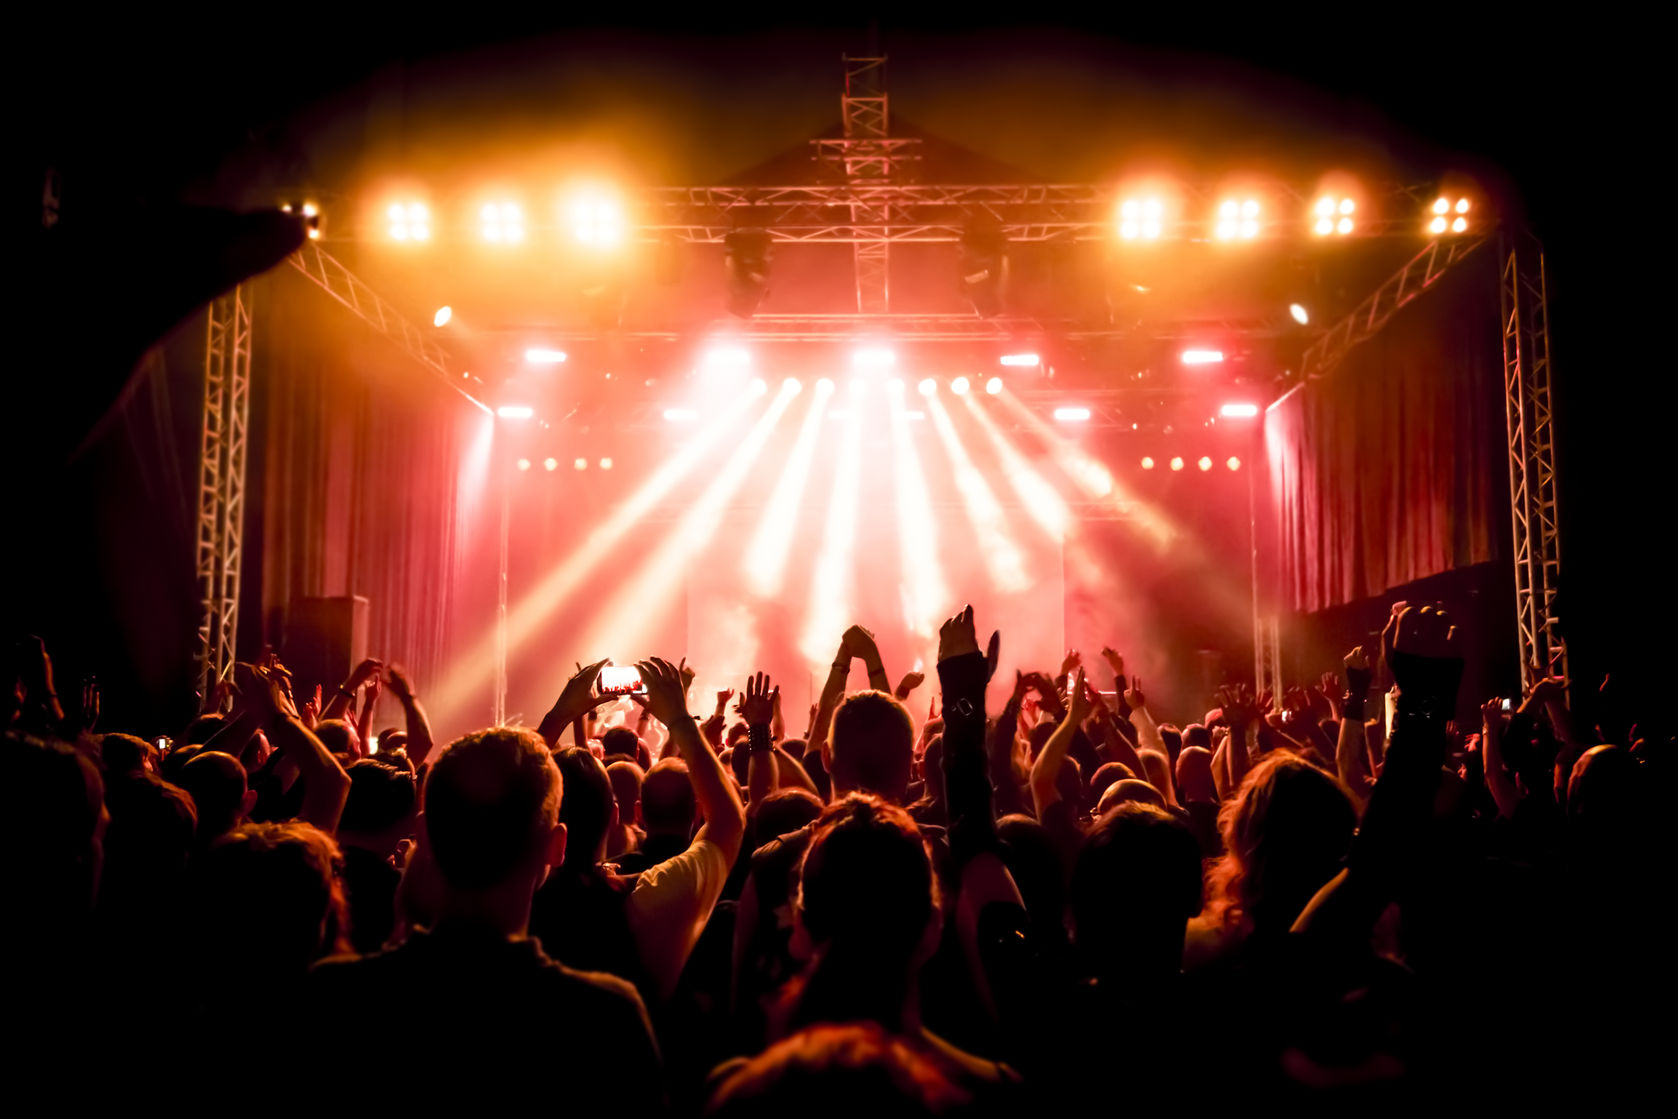 concert amazon ticket ticketmaster sales tickets battle could sports 123rf web